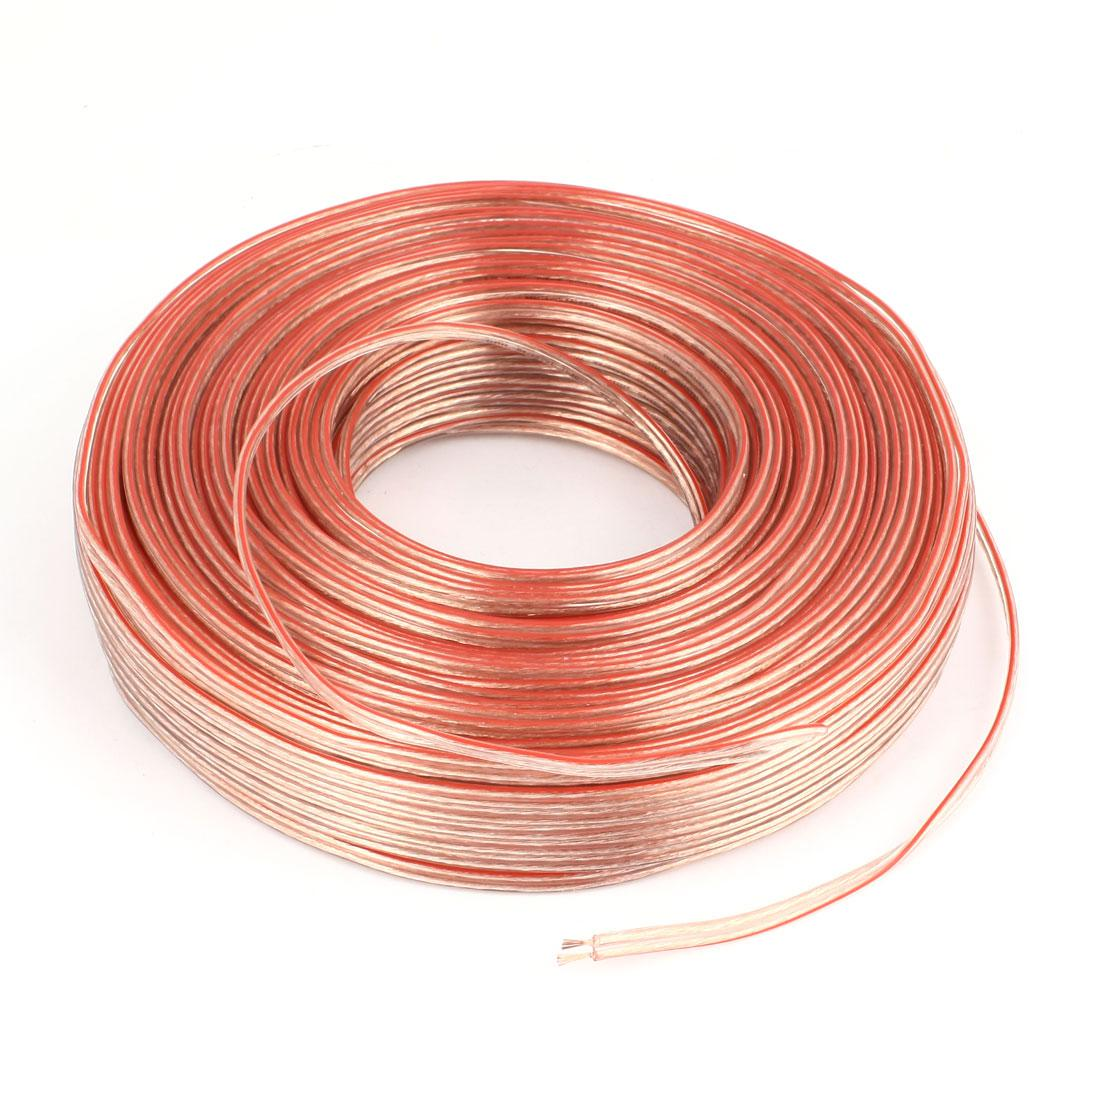 80 meter 262 4 feet speaker wire cable cord coil car home audio see larger image